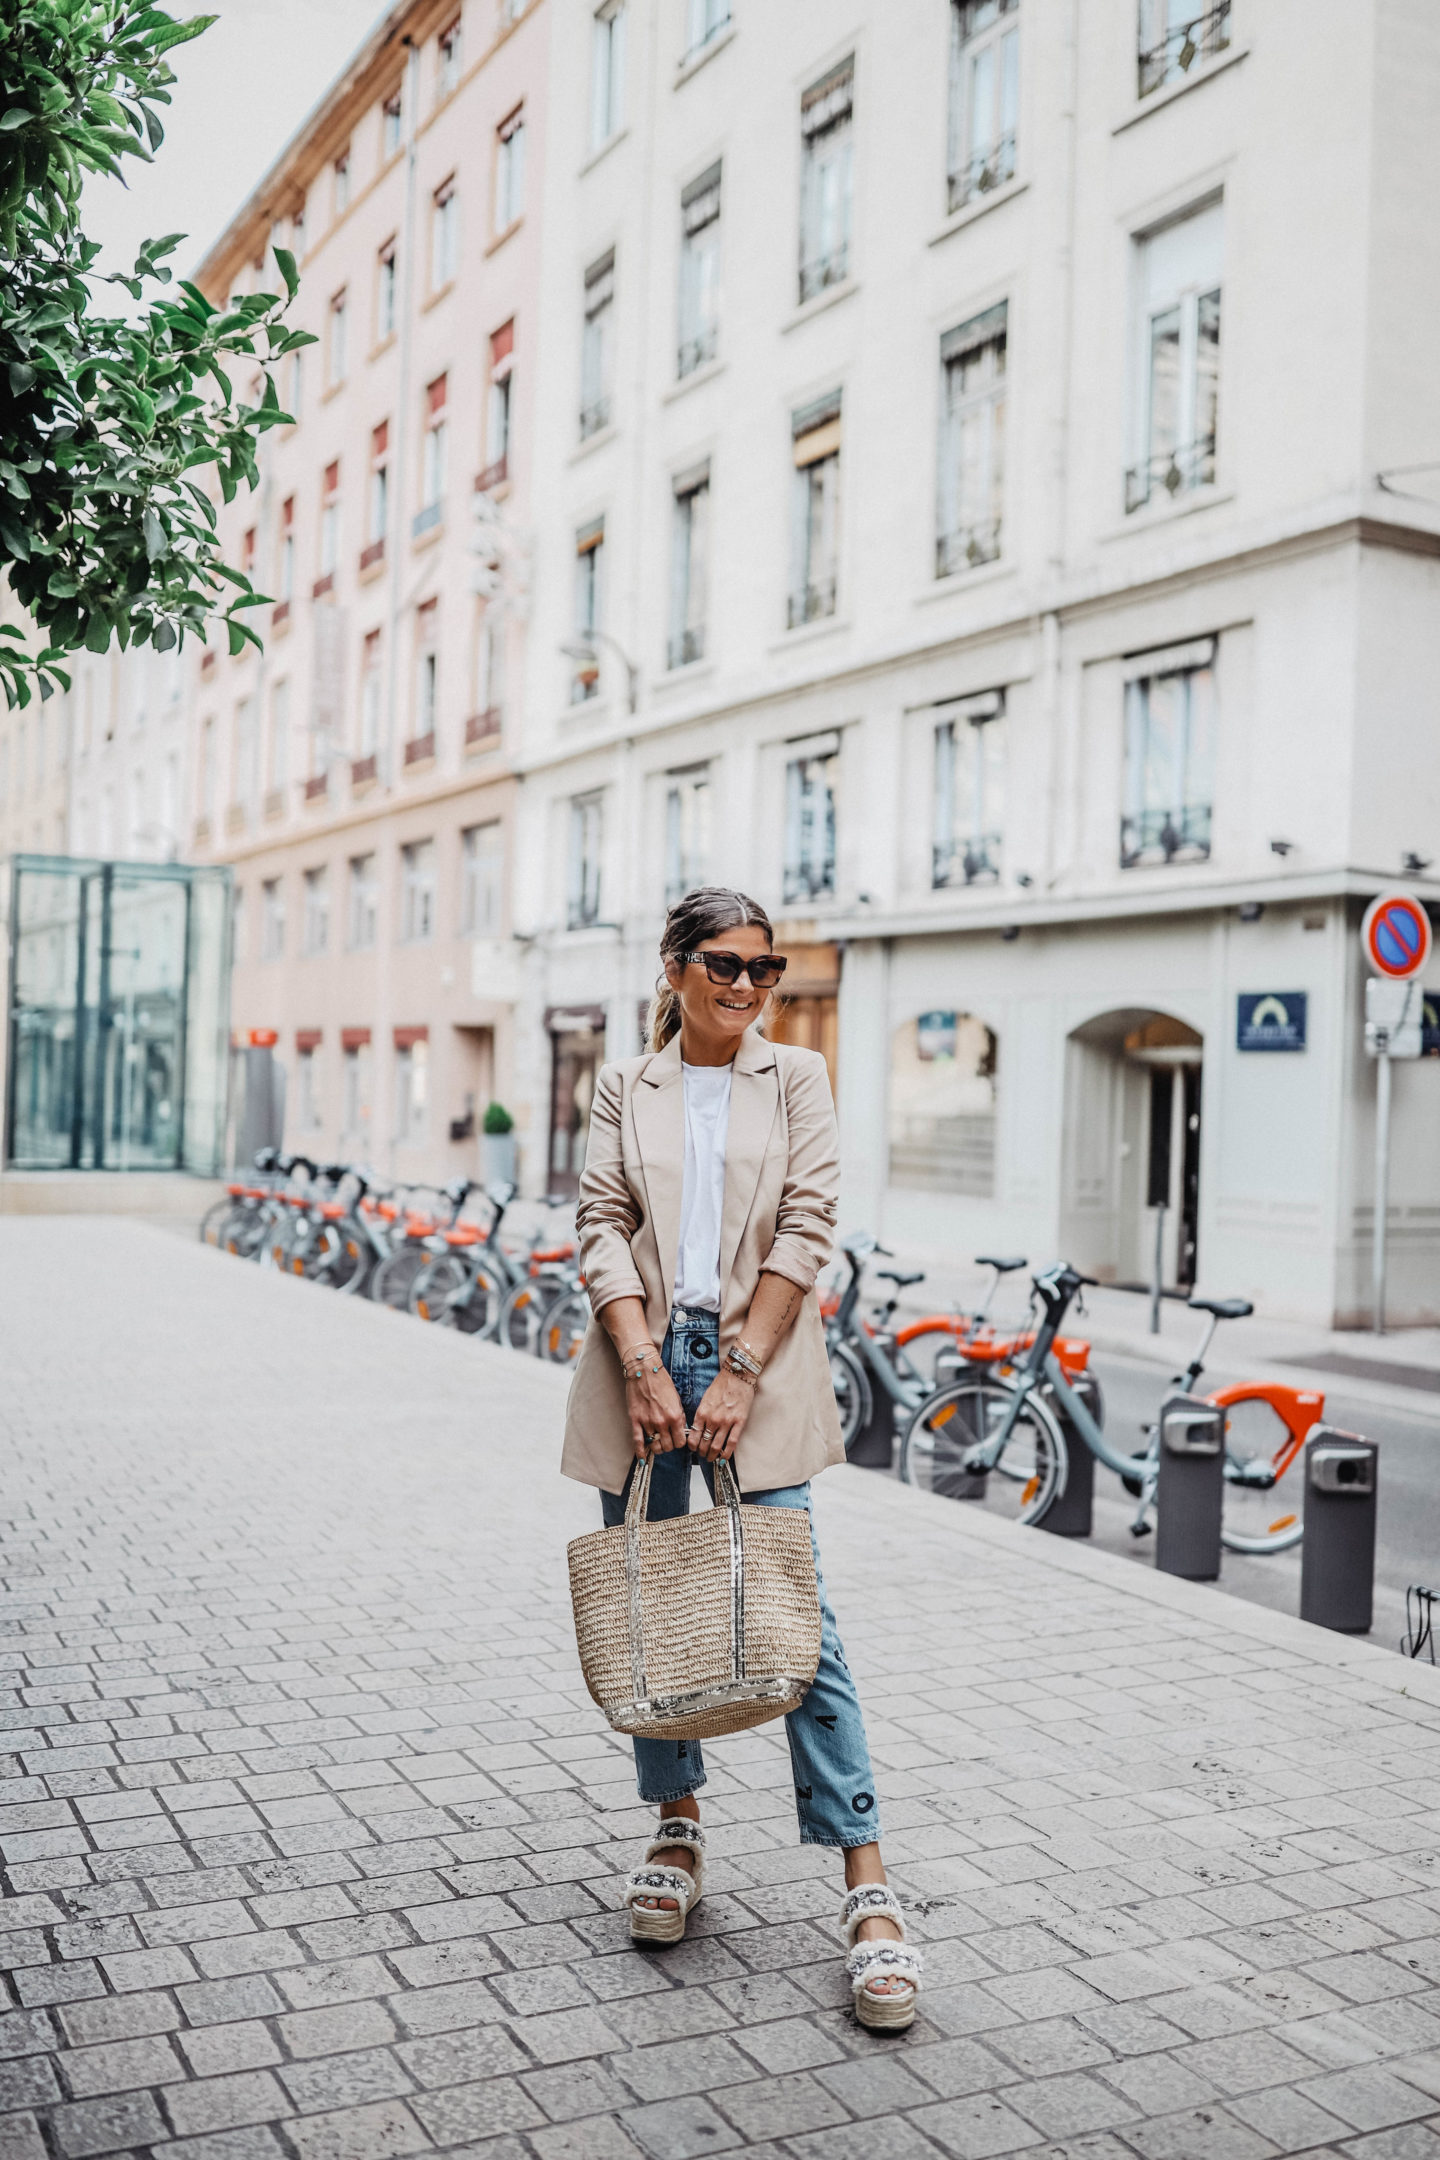 Sac raphia Vanessa Bruno marieandmood blog mode